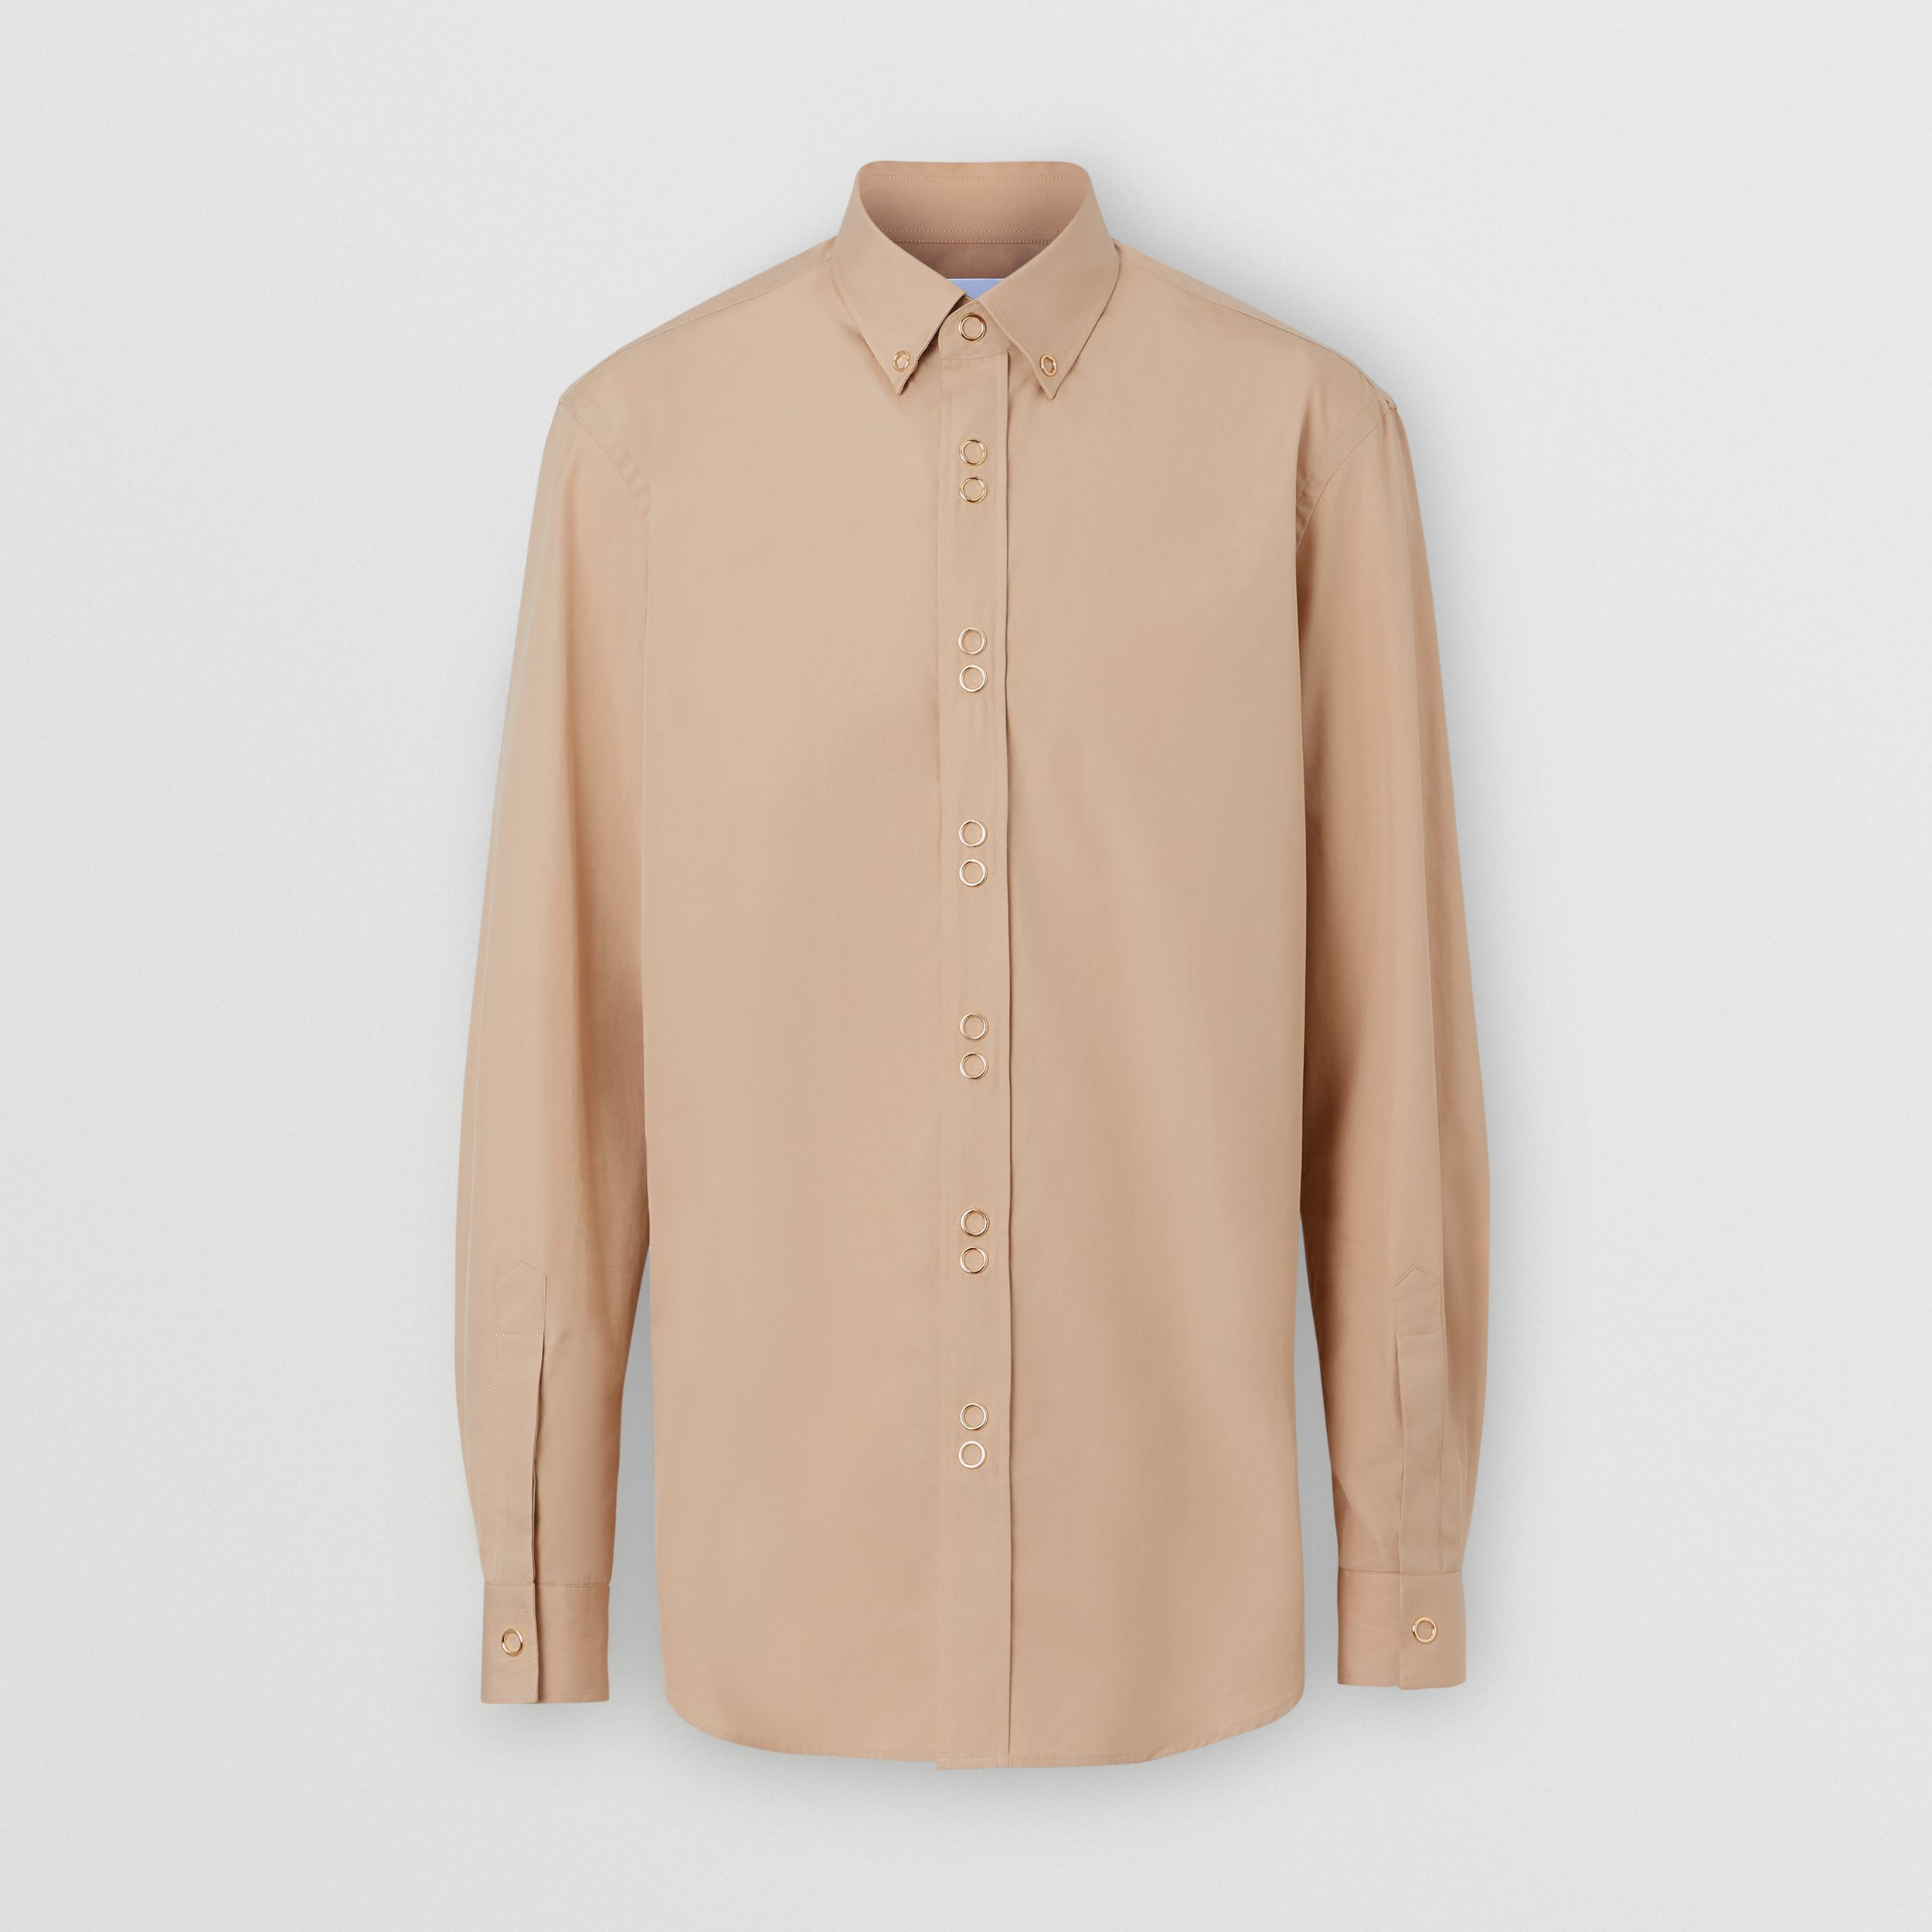 Classic Fit Double Press-stud Cotton Shirt in Soft Fawn - Men | Burberry - 4